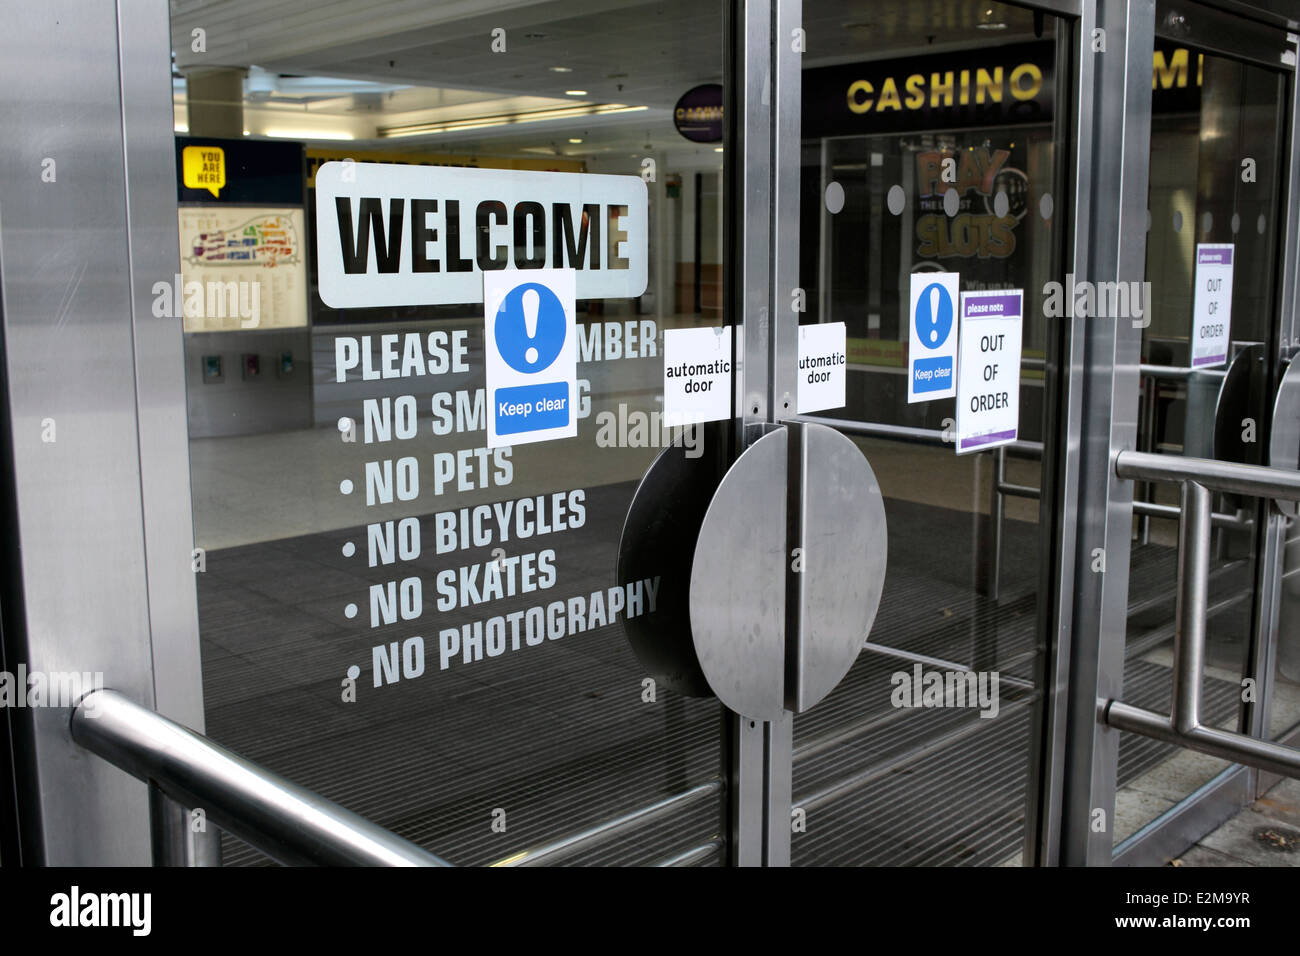 The off putting entrance to the East Kilbride Shopping Centre, East Kilbride, Scotland.  No, No, No…! - Stock Image